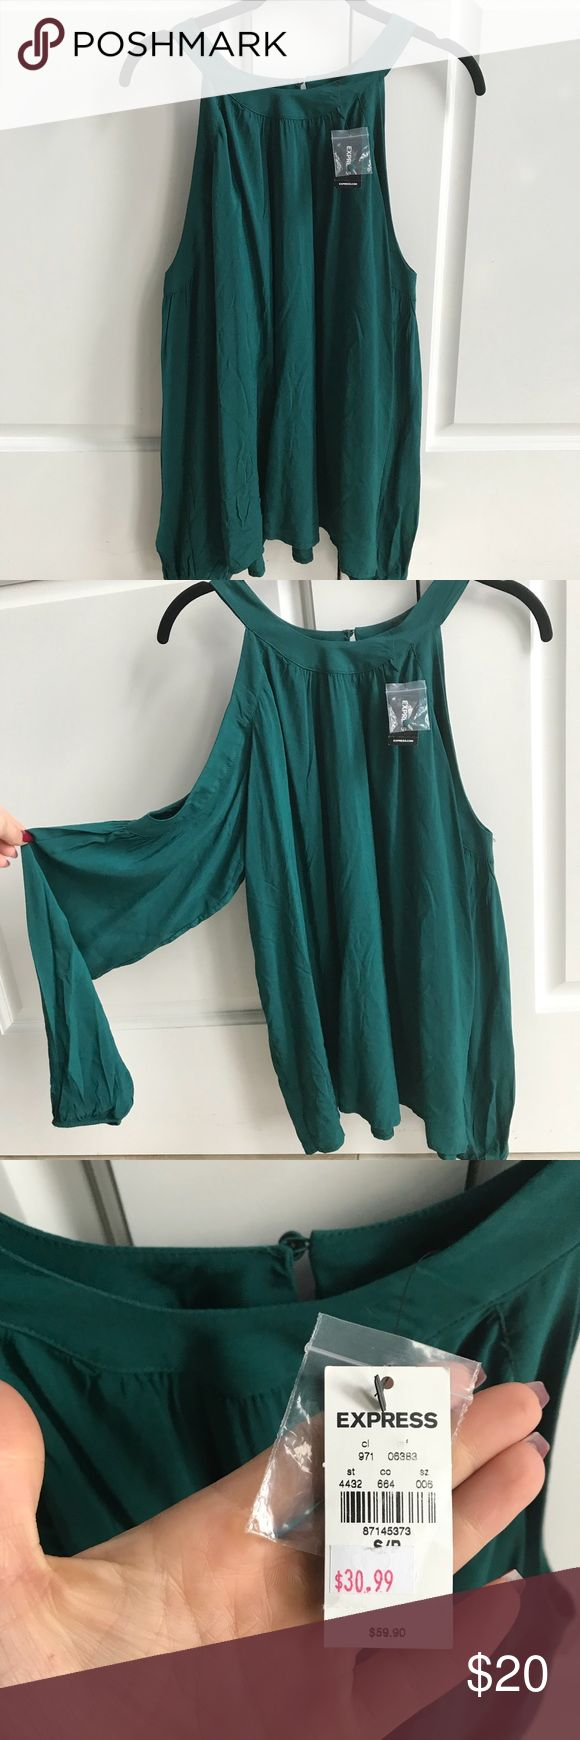 NWT Express cold shoulder teal blouse Teal green express blouse with open shoulder and flowing sleeves that gather at the wrist. Beautiful top, just a bit too big for me!   ✅ Reasonable offers considered  ❌ NO TRADES ❌ NO LOWBALLS Express Tops Blouses